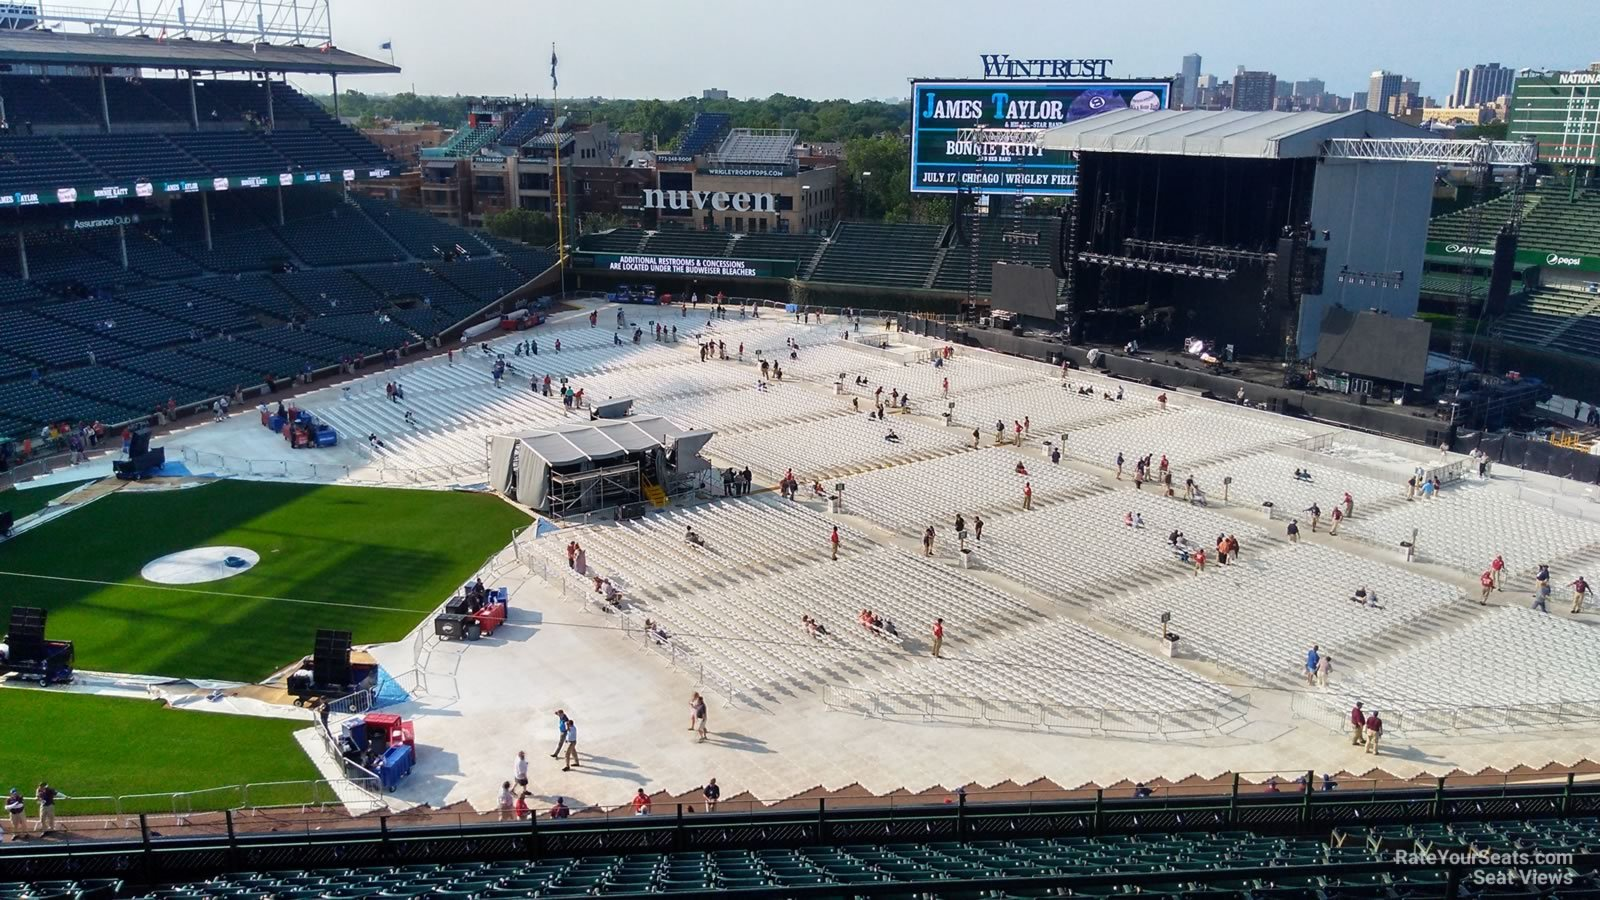 Wrigley Field Section 532 Concert Seating - RateYourSeats.com